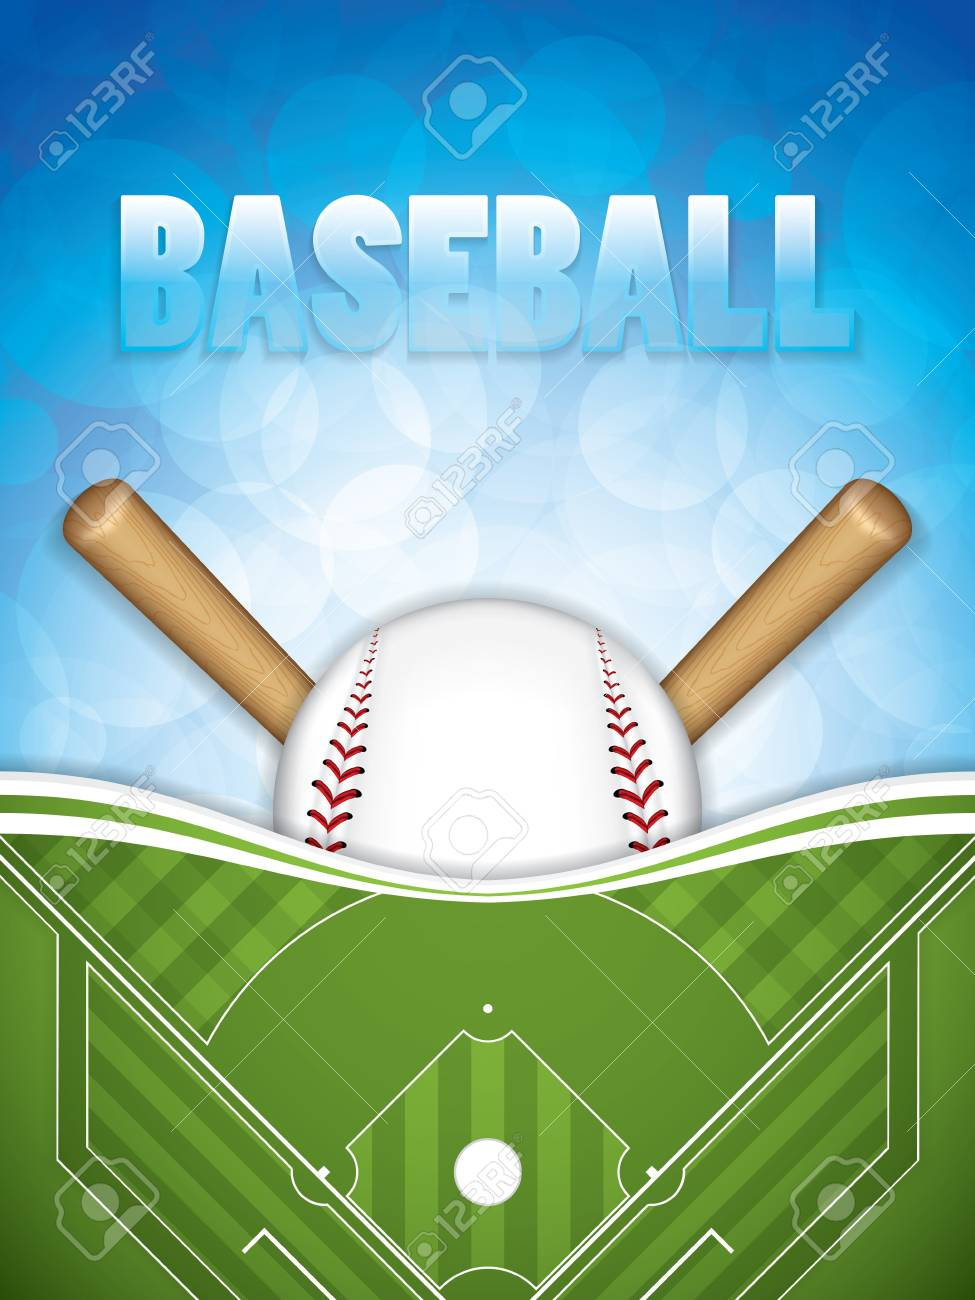 baseball brochure template design vector illustration stock vector 97076649